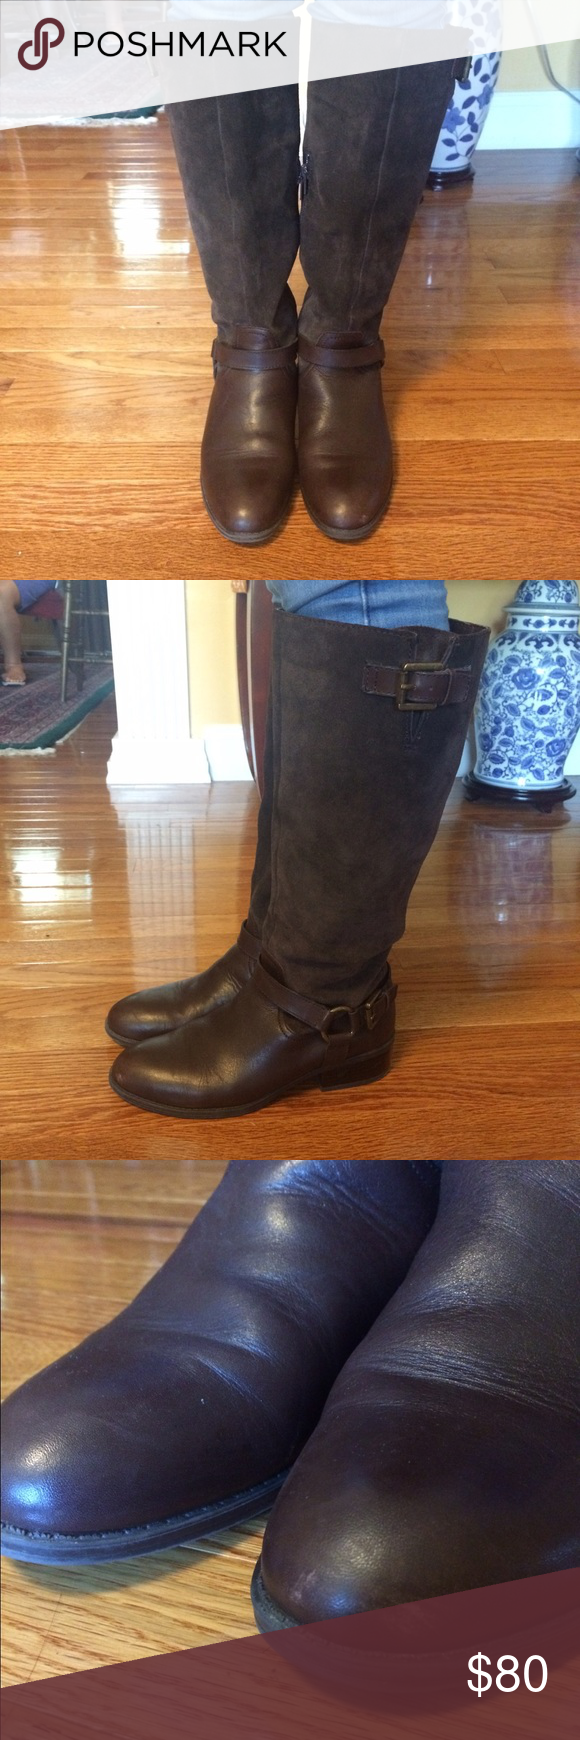 "LAUREN by Ralph Lauren McLeod Riding Boot Selling dark brown LAUREN by Ralph Lauren McLeod Riding Boots. Size 7. Slight wear on the soles and pictured scratch on left toe. Leather with Suede shaft. Heel height is about 1.25 inches. Tumbled calf upper, side zipper, leather lining and lightly cushioned footbed. 16"" shaft, 15"" circumference. Comes with original box and tissue. Make an offer if interested! Lauren Ralph Lauren Shoes Heeled Boots"